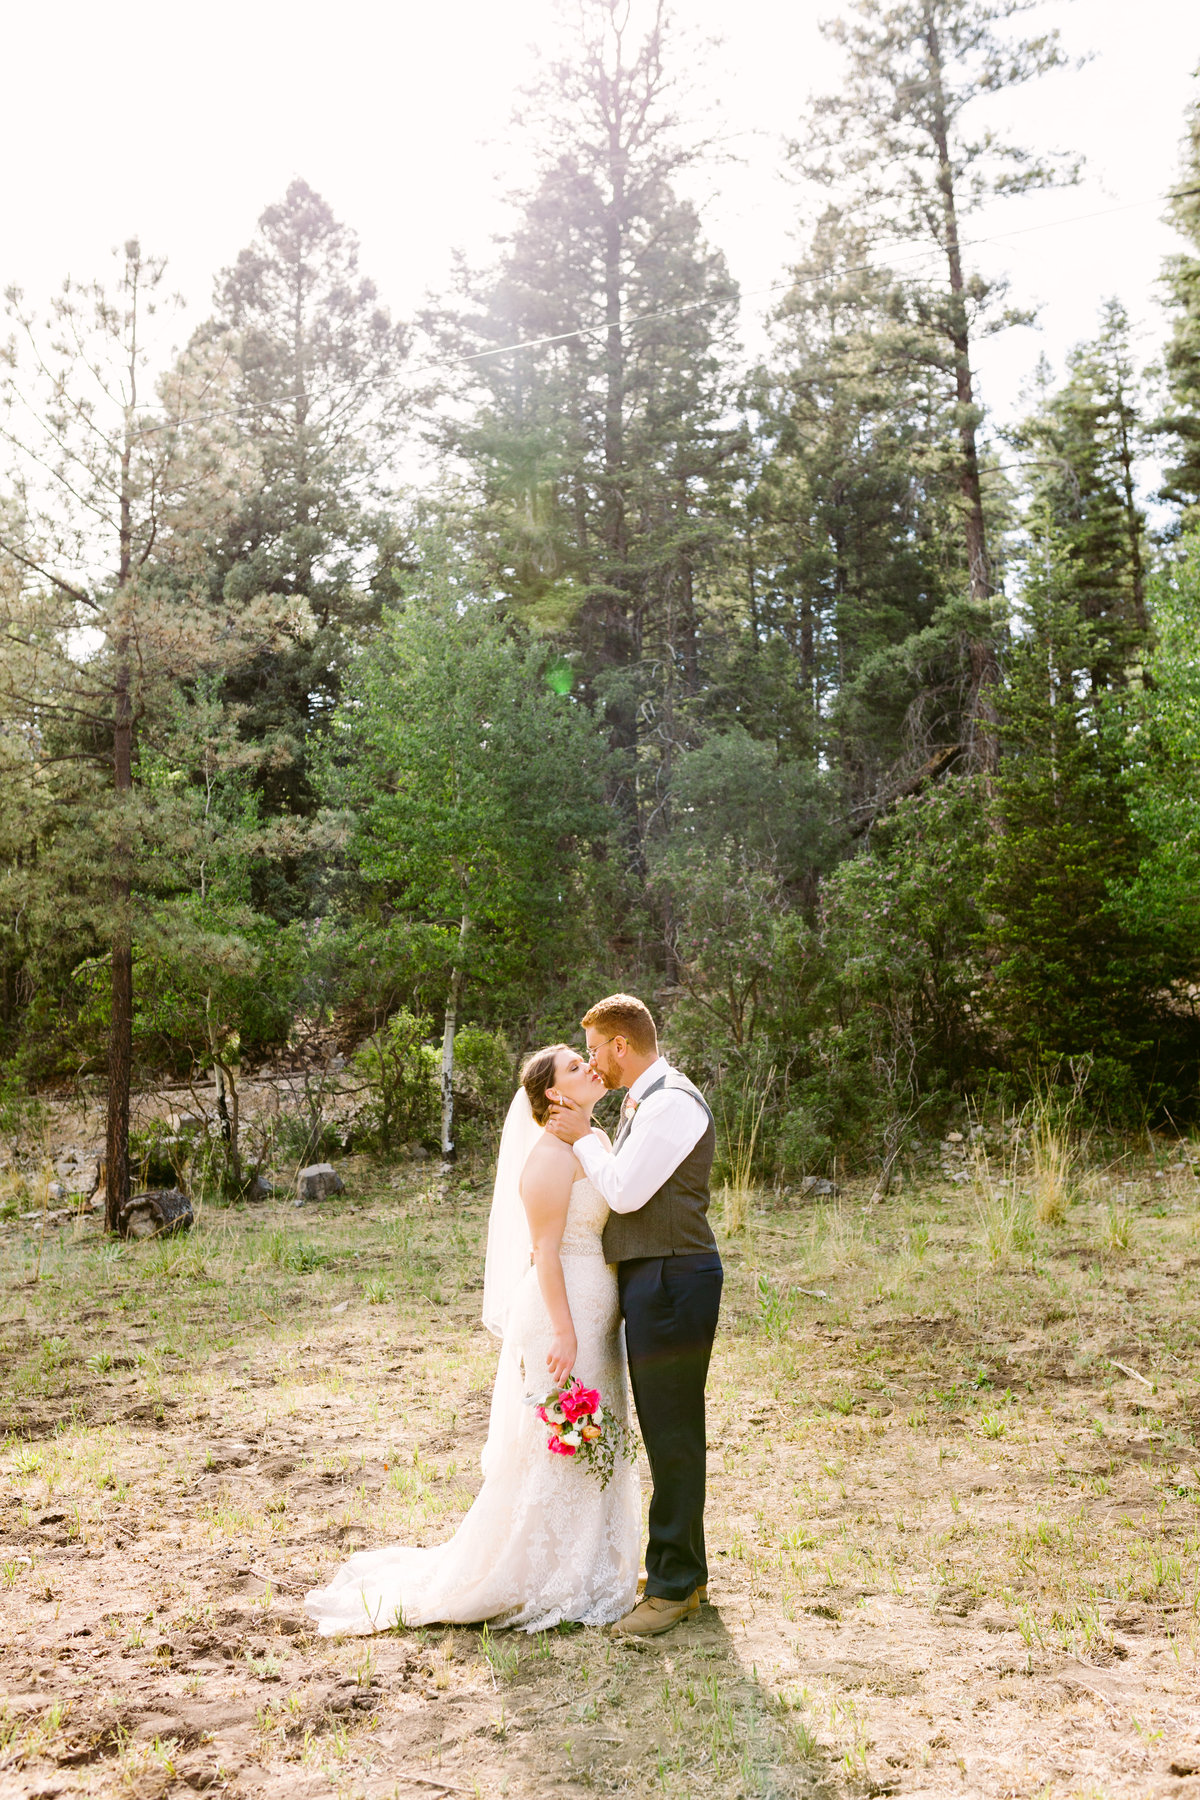 Albuquerque Outdoor Country Wedding Photographer_www.tylerbrooke.com_Kate Kauffman-26